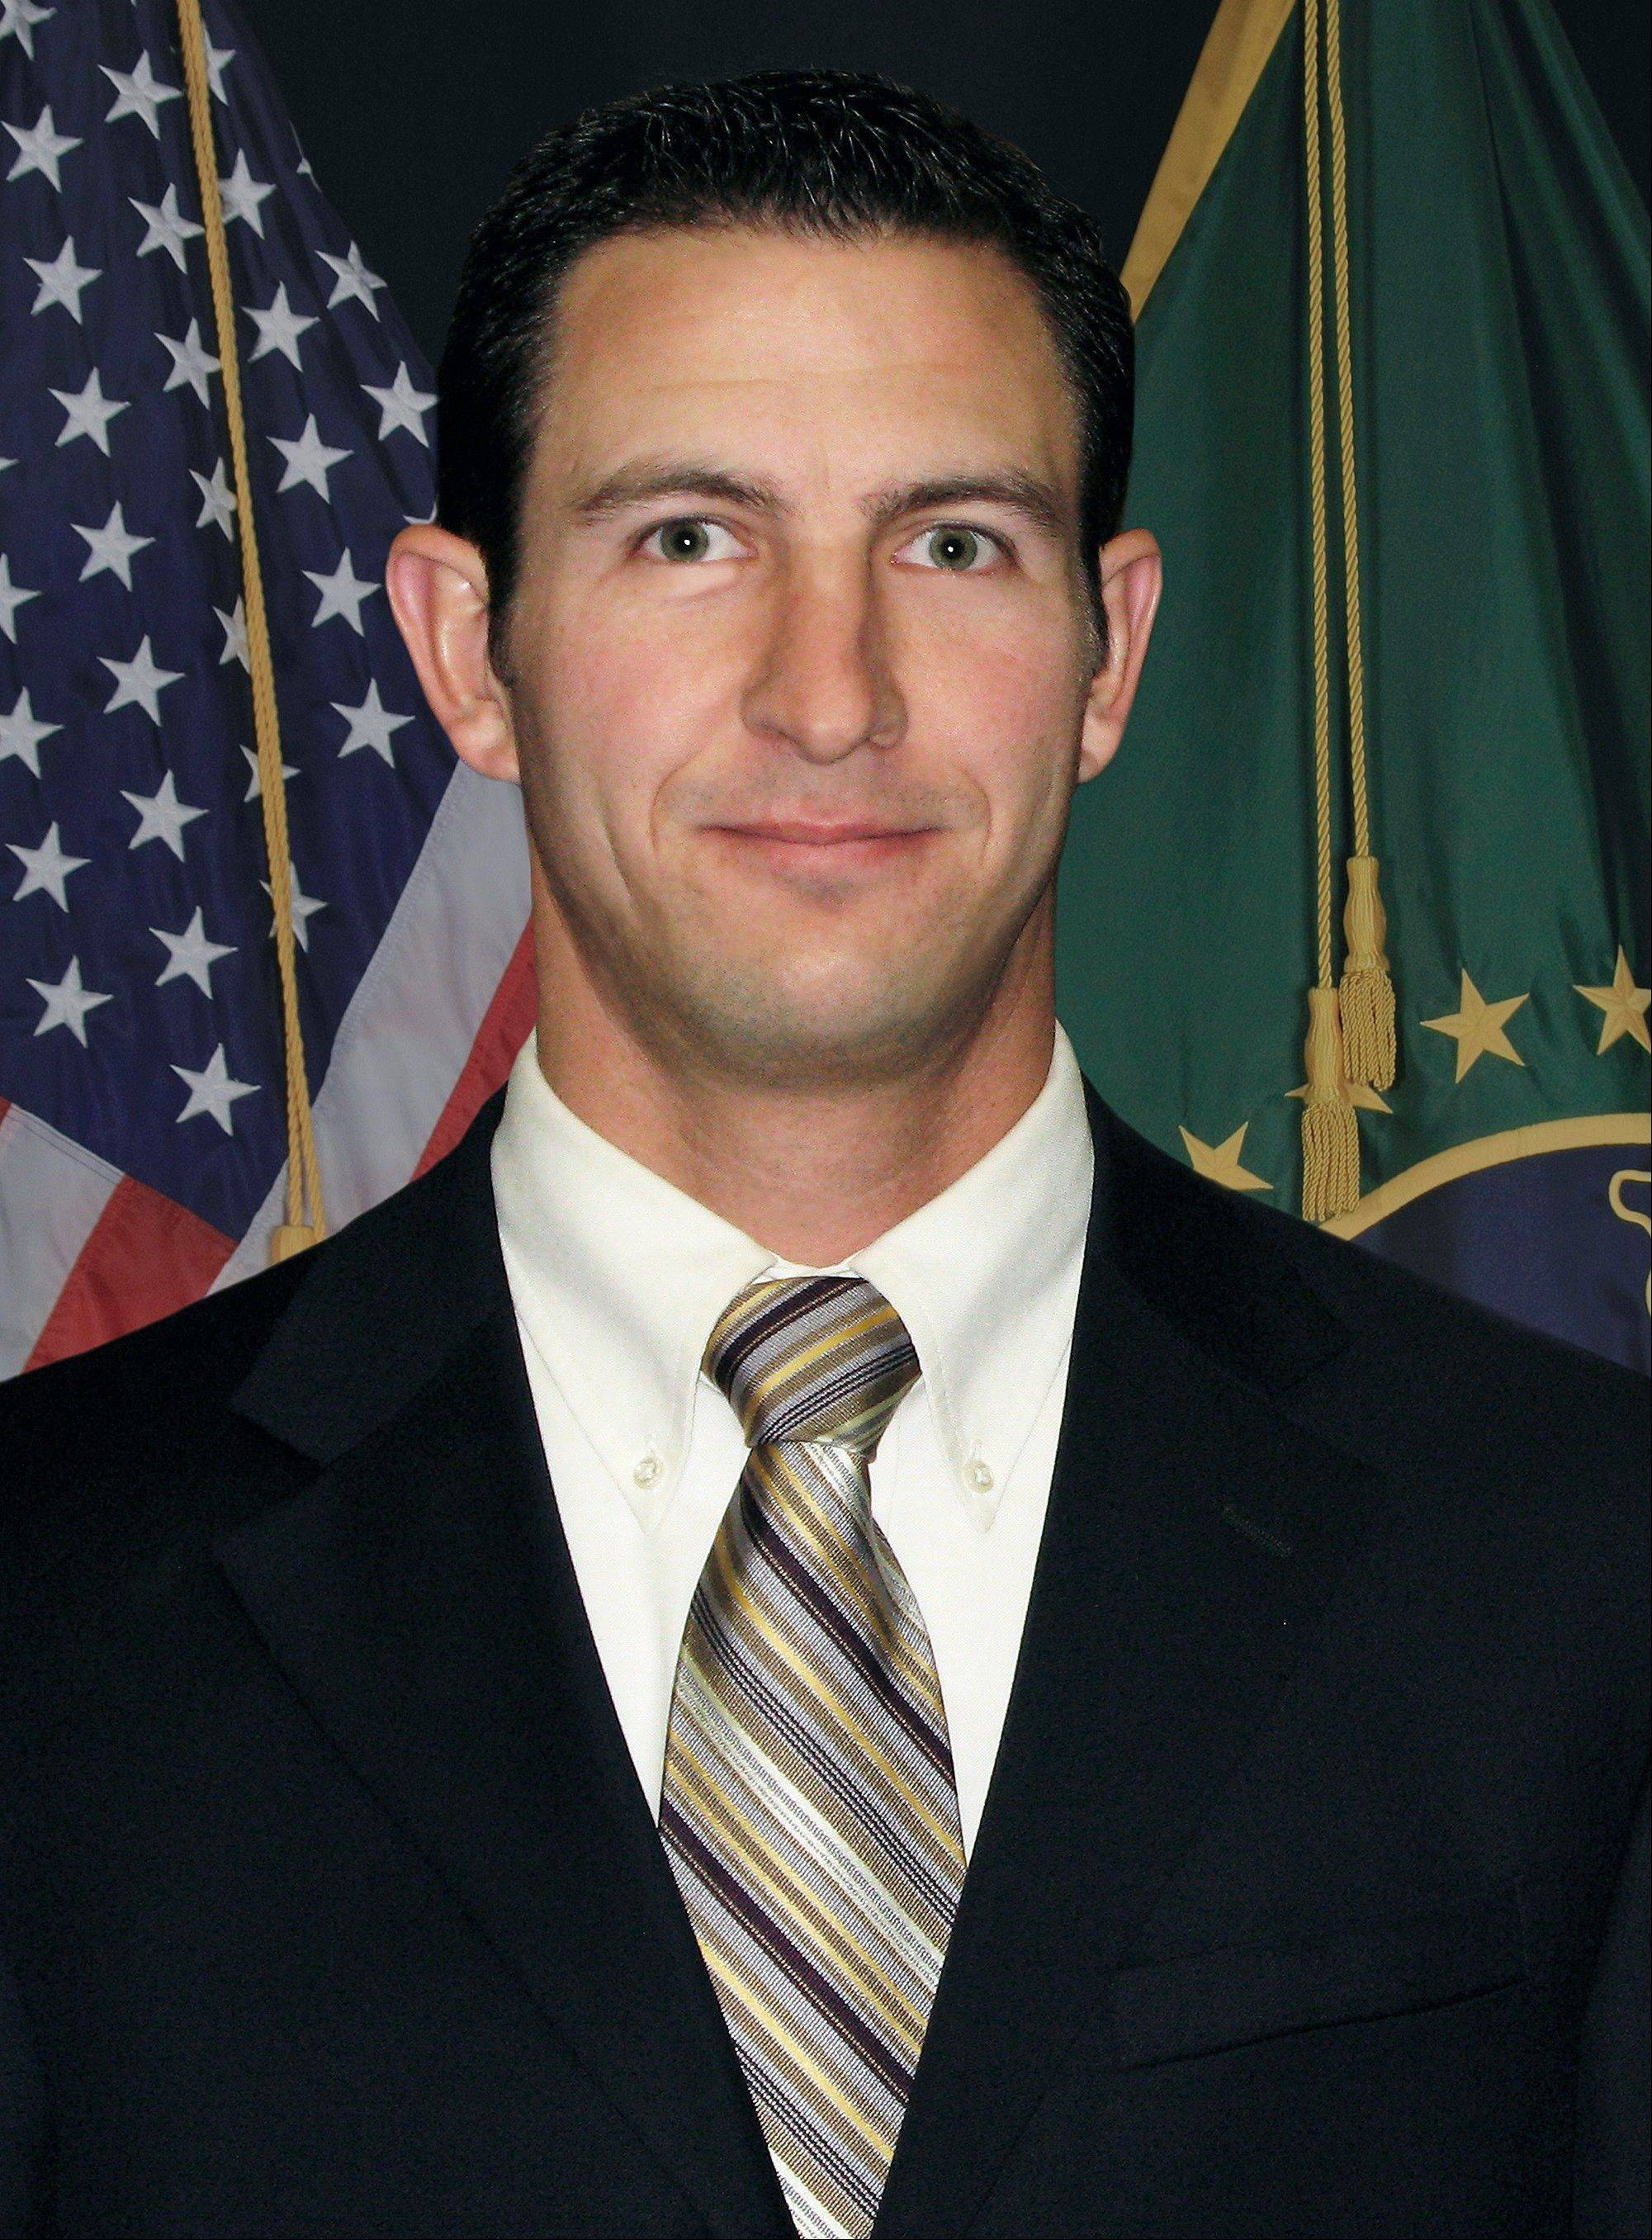 This undated photo provided by U.S. Customs and Border Protection shows slain Border Patrol agent Nicolas Ivie. The fatal shooting of Ivie and the wounding another U.S. Border Patrol agent near the Arizona-Mexico border may have been a case of friendly fire, a union chief for border agents and law enforcement officials said Friday.